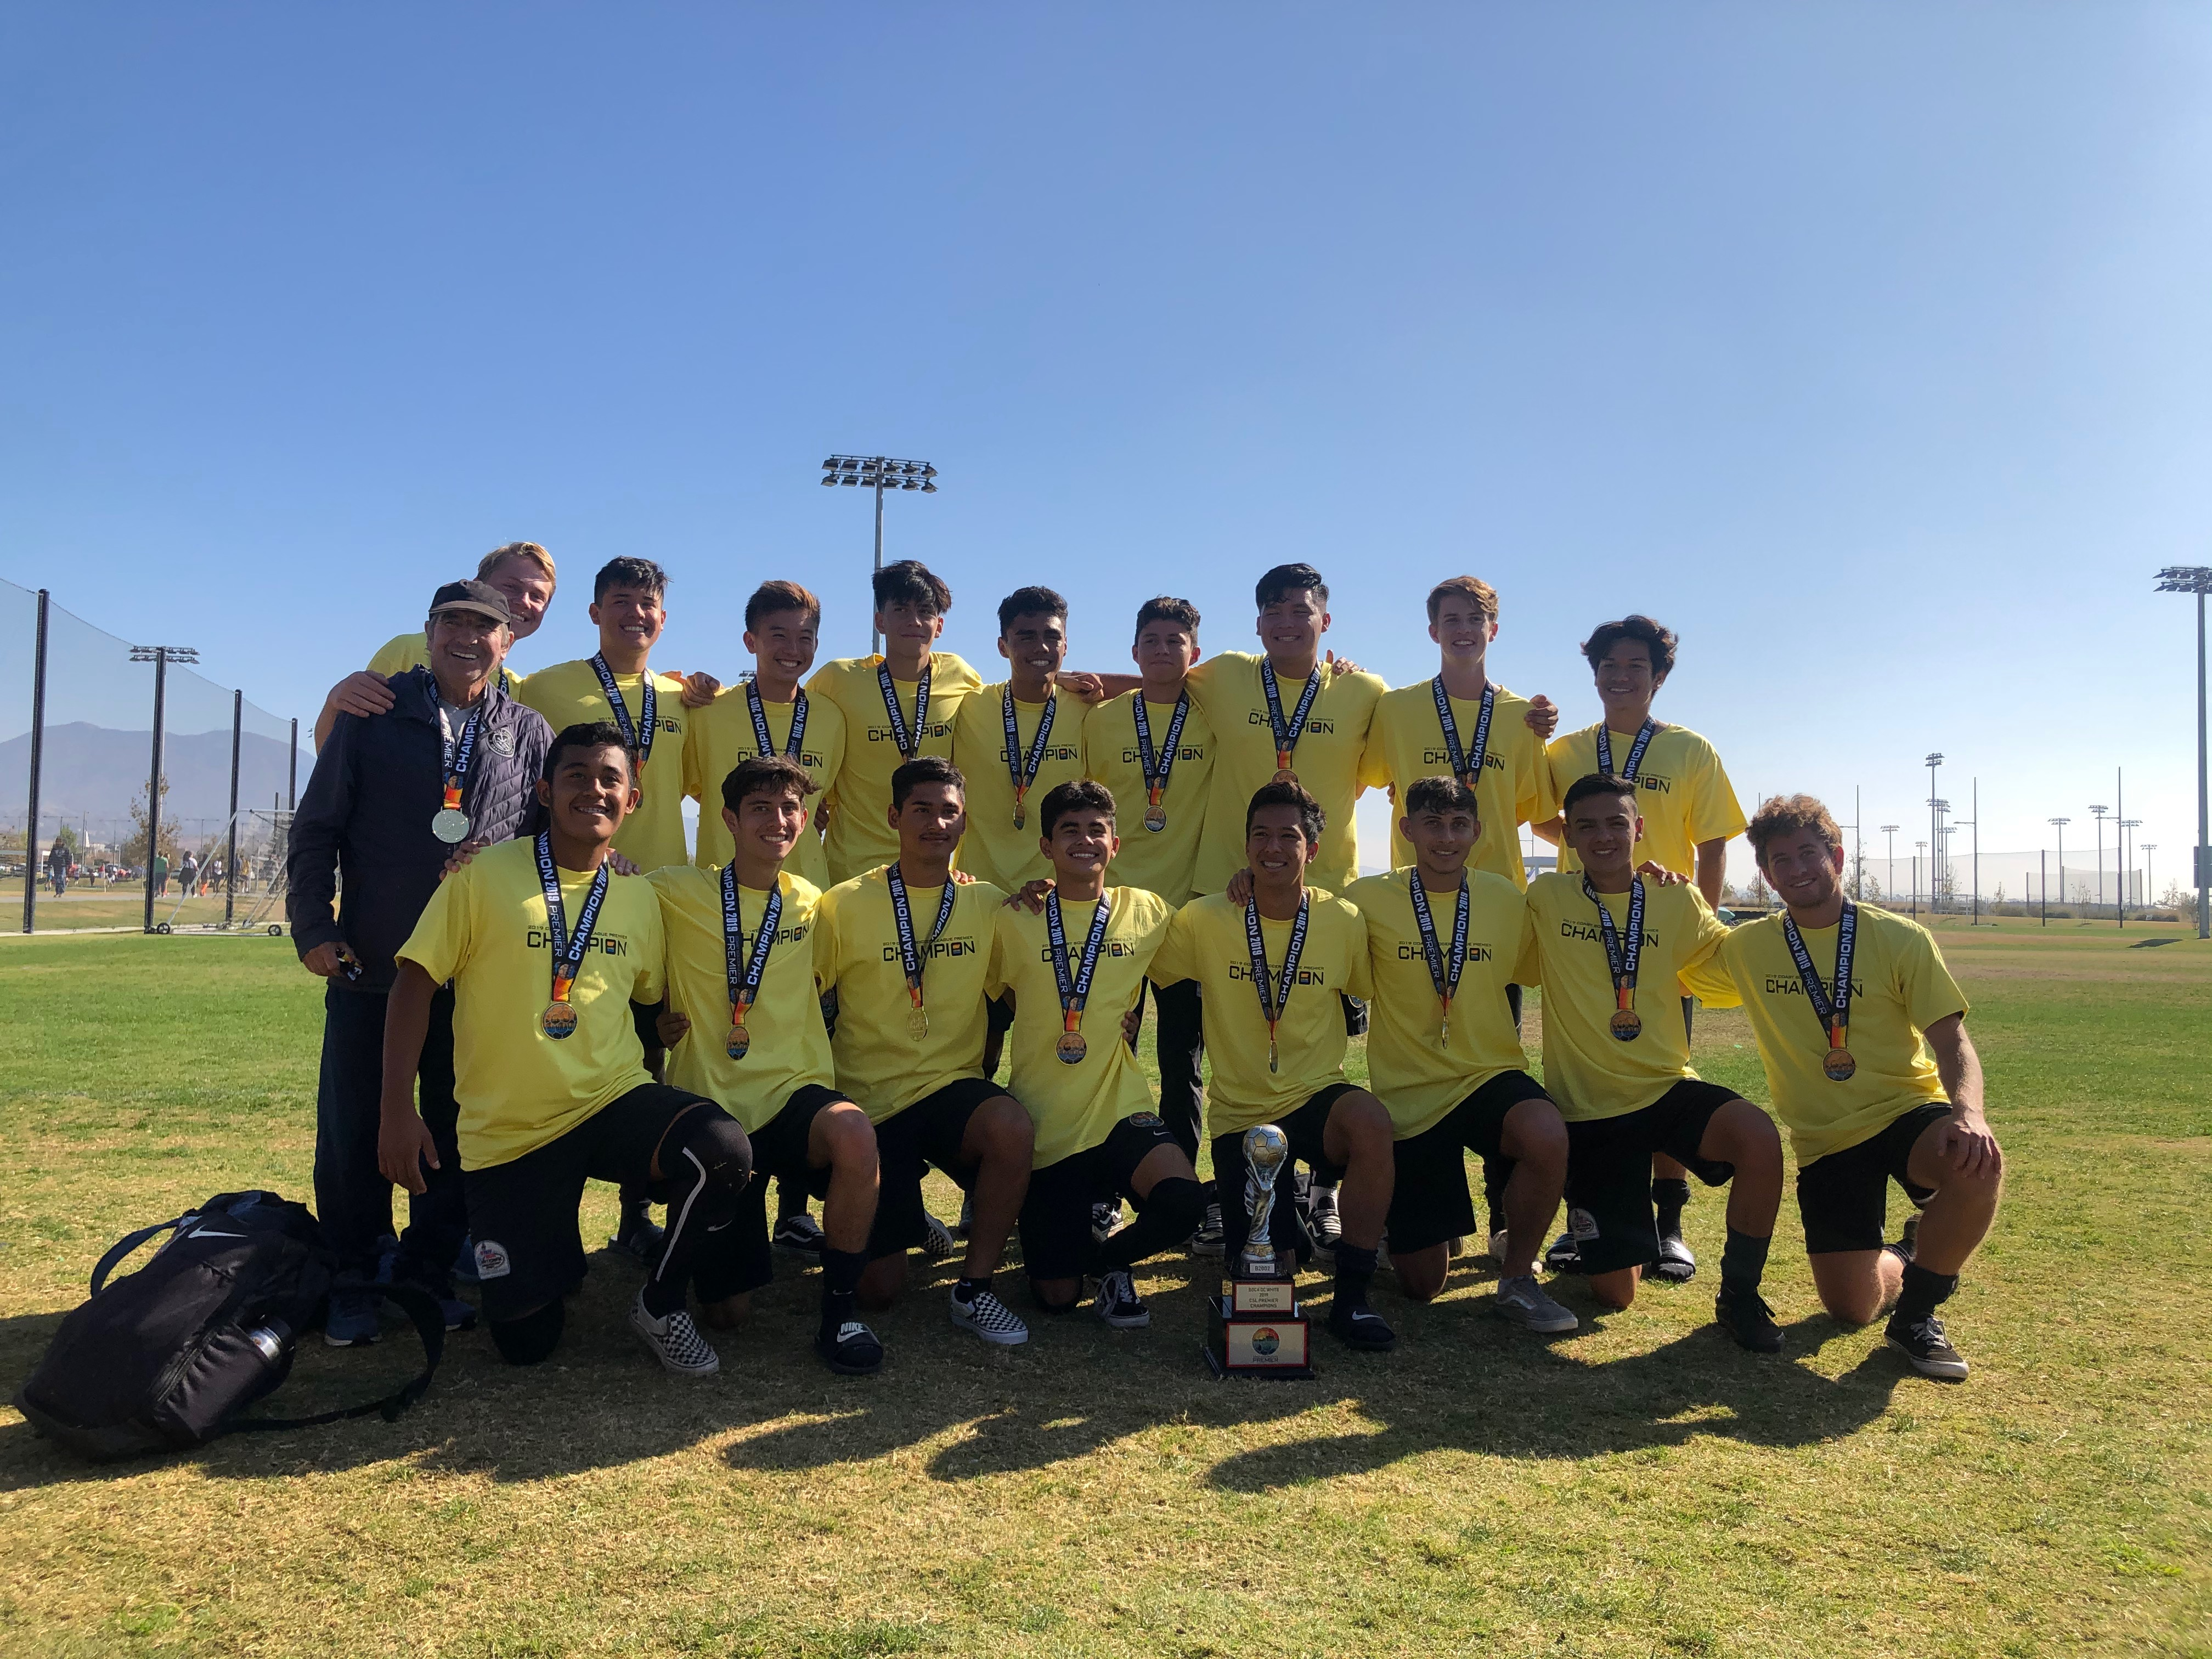 THE BOCA OC 02's ARE THE PREMIER LEAGUE CHAMPIONS!